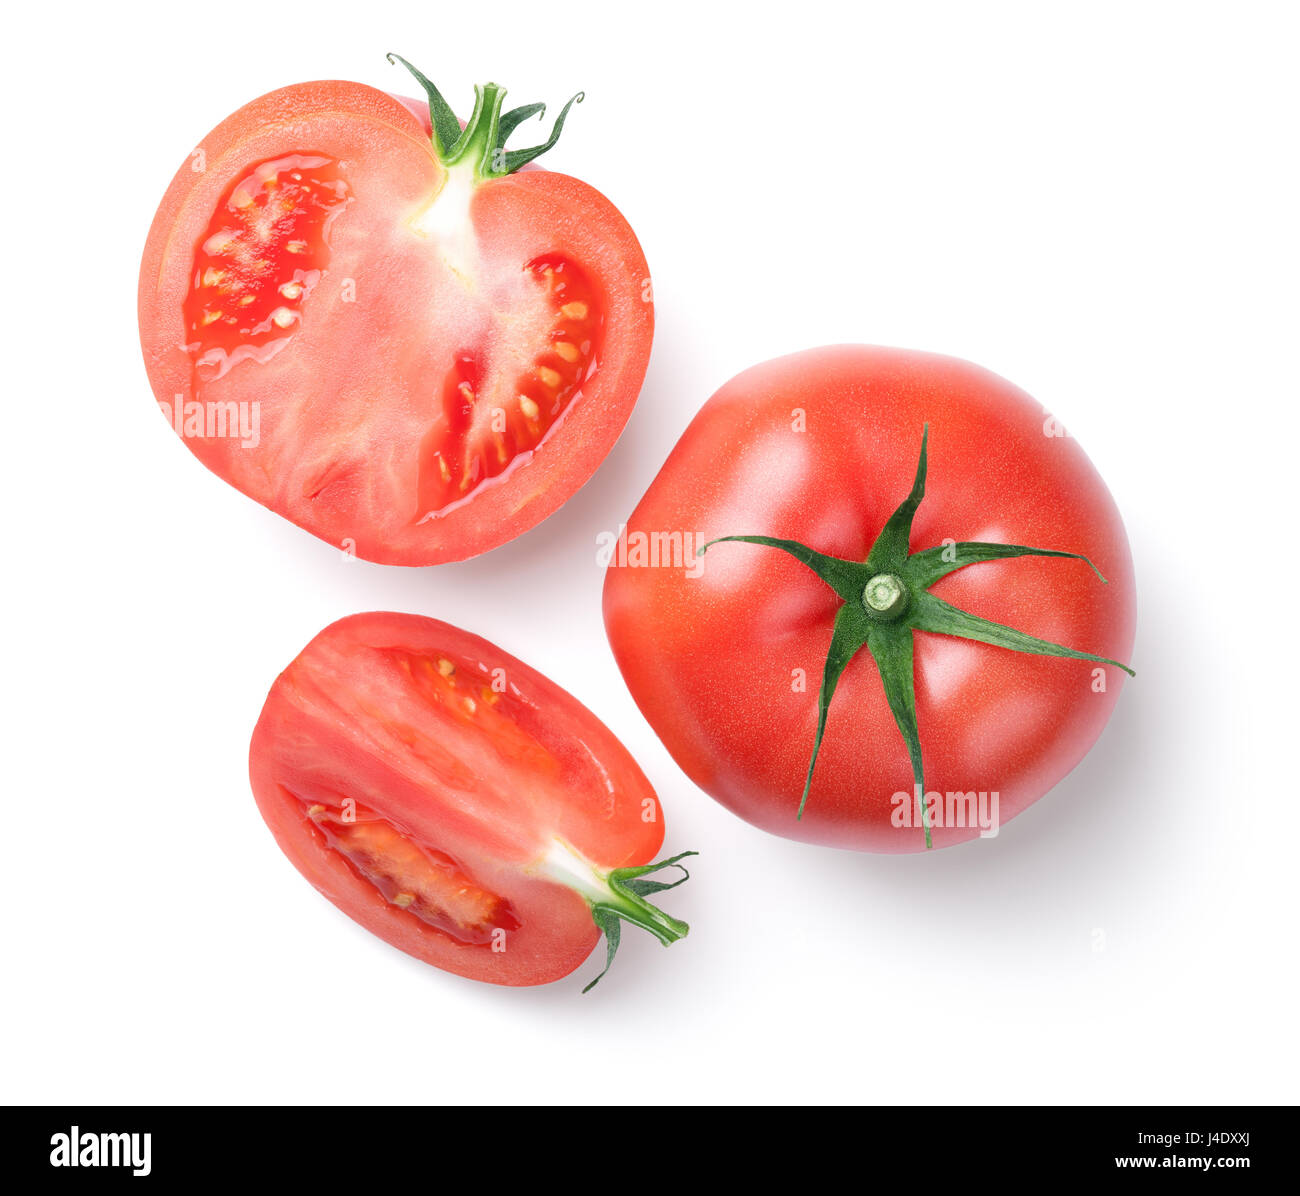 Pink tomatoes isolated on white background. Top view - Stock Image